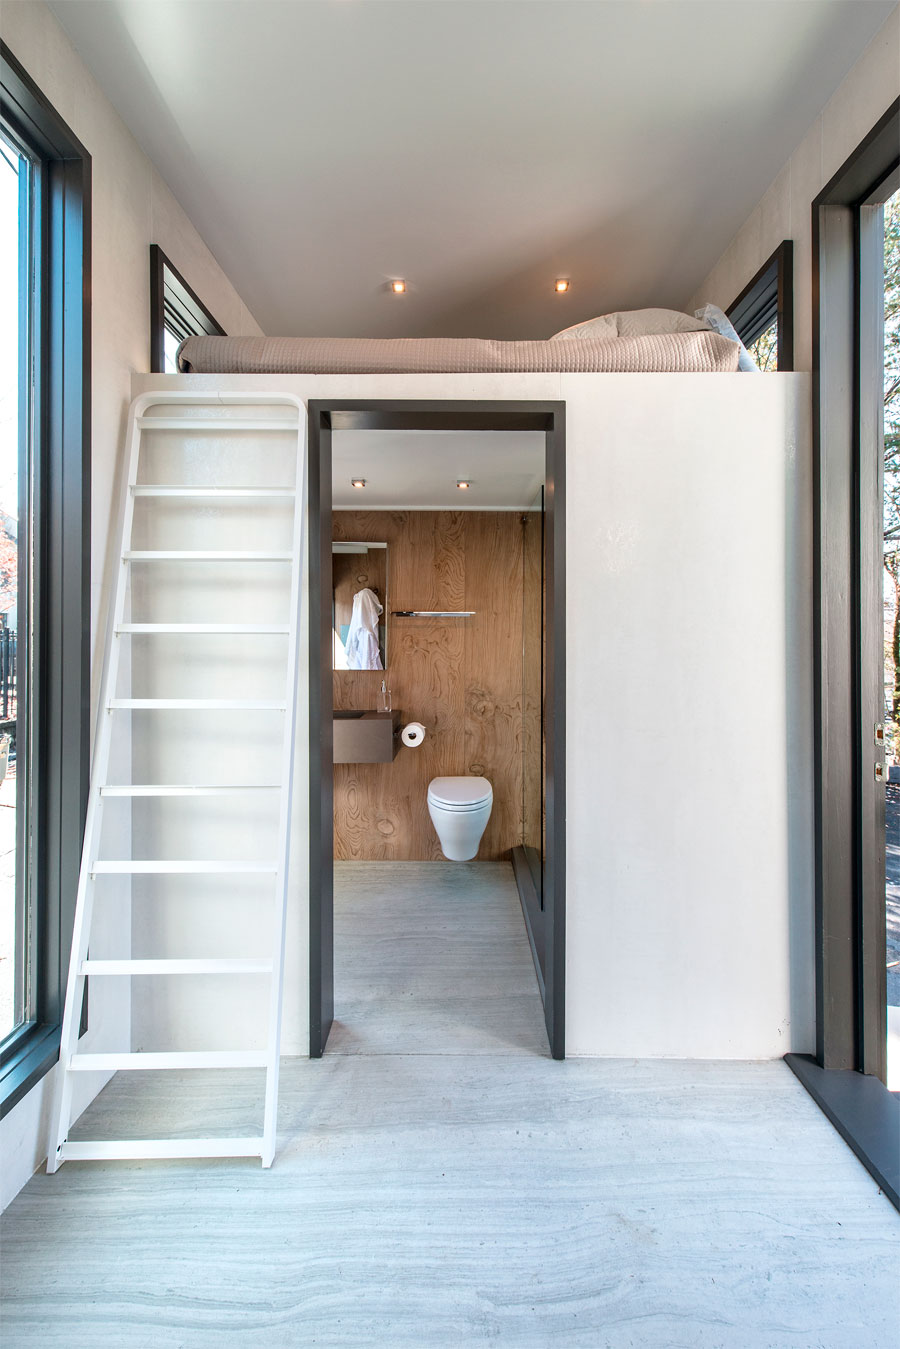 neolith-tiny-house-jeffrey-bruce-baker-6